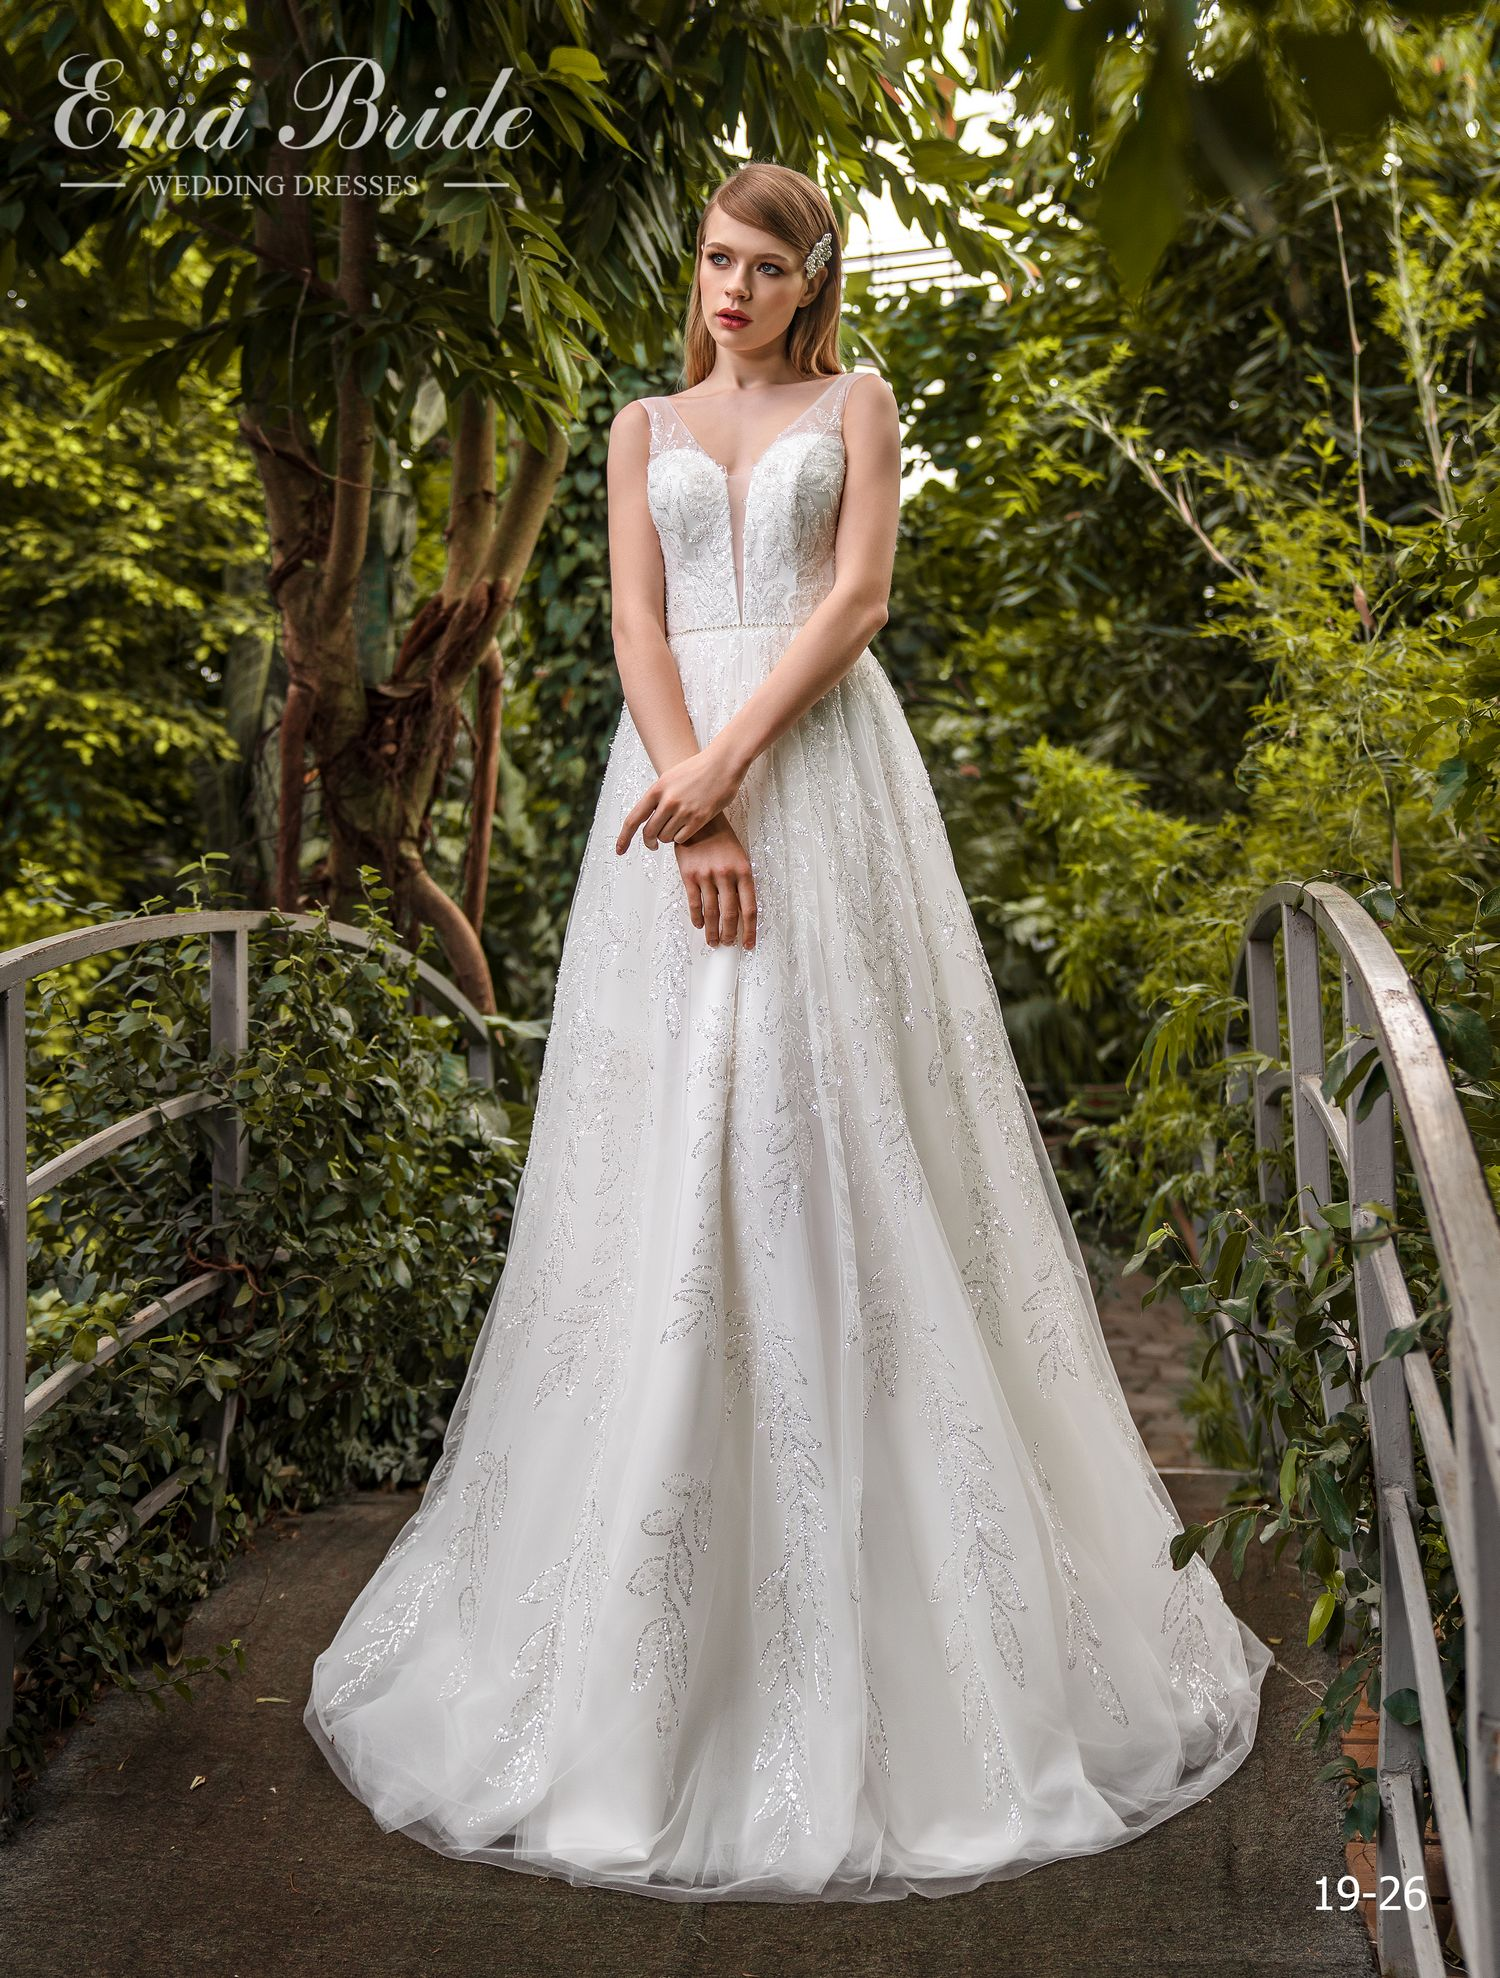 Model 19-26 | Buy wedding dresses wholesale by the ukrainian manufacturer Emabride